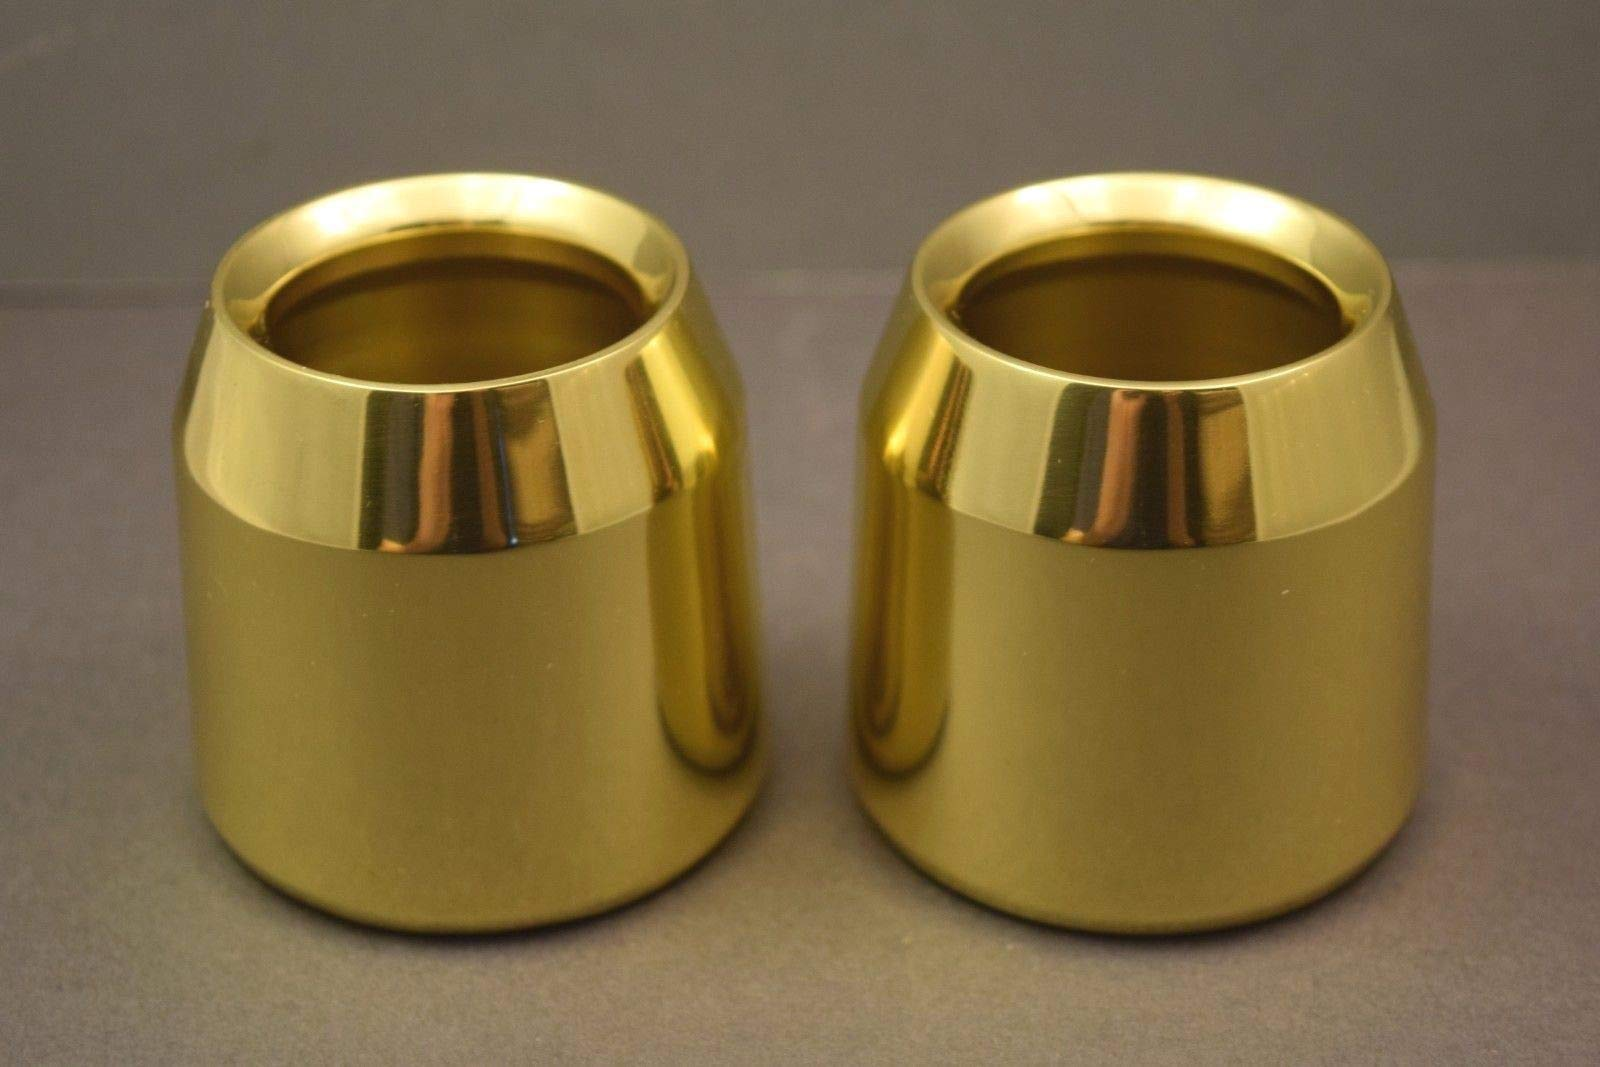 Pair of Solid Brass Church Candle Followers - 2'' Size